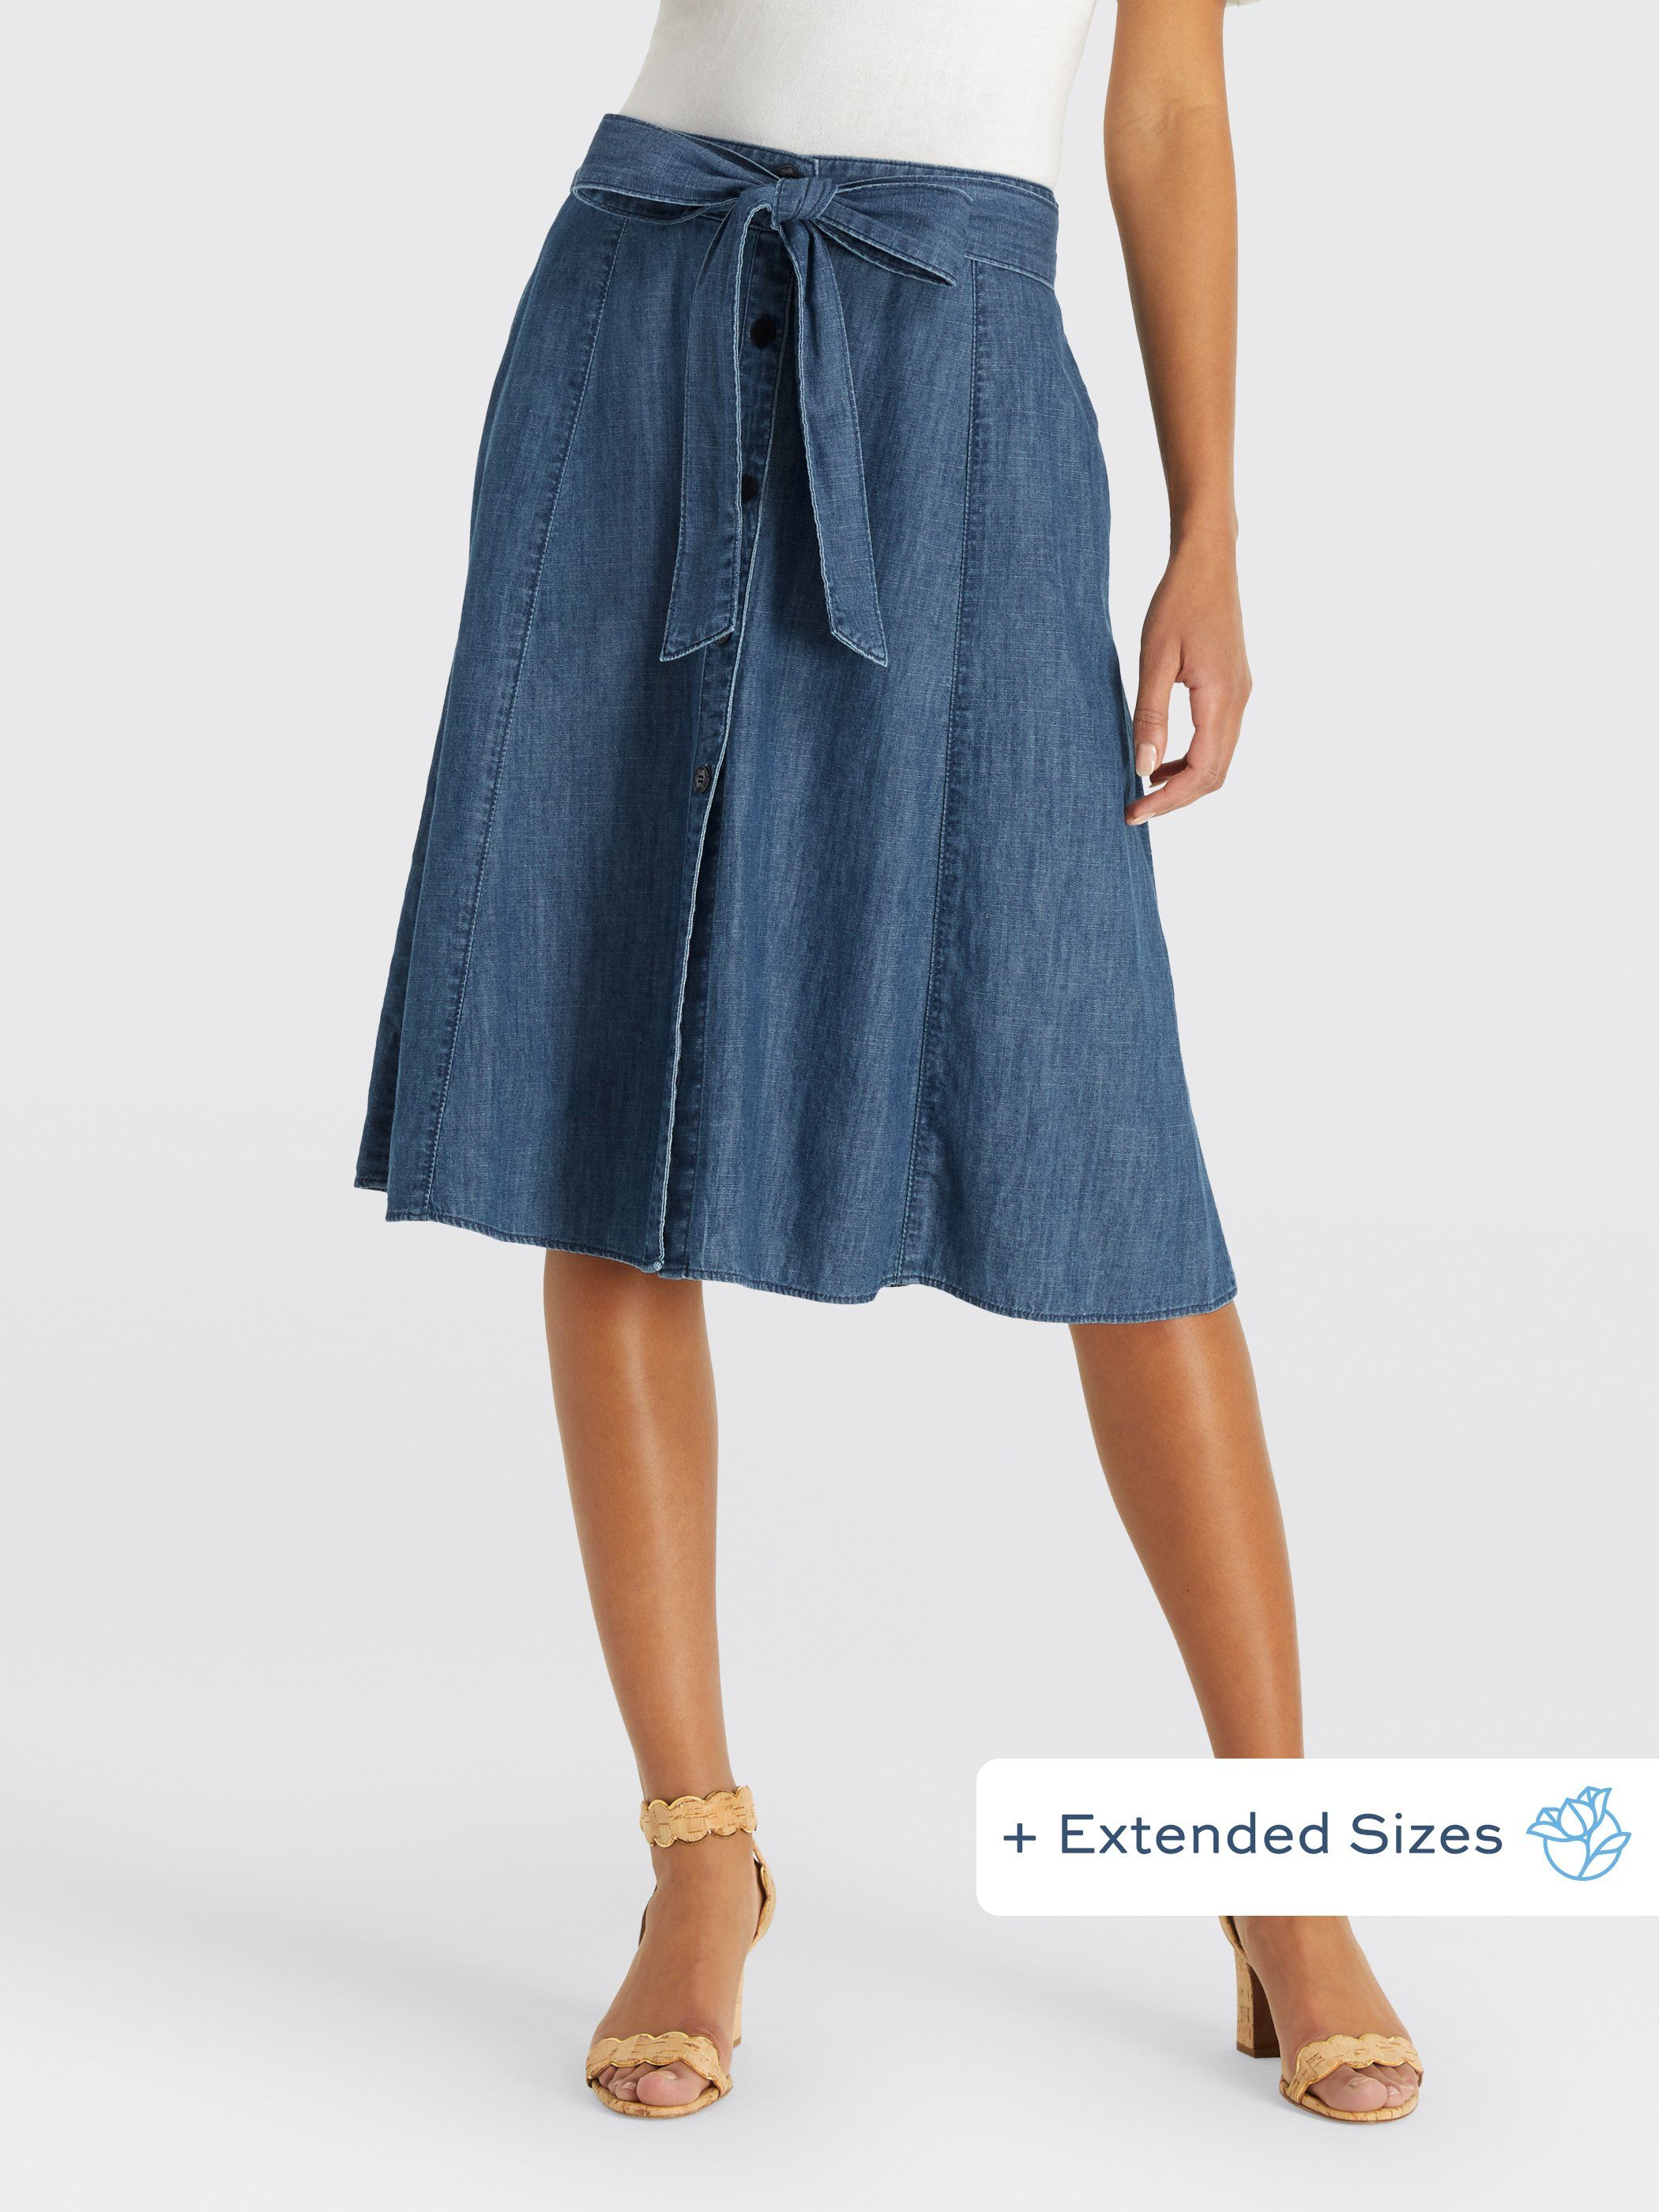 586f3c85f Chambray is one of our favorite fabrics, and it's perfect for this super  comfy and stylish midi skirt. With buttons down the front and a tie at the  waist, ...